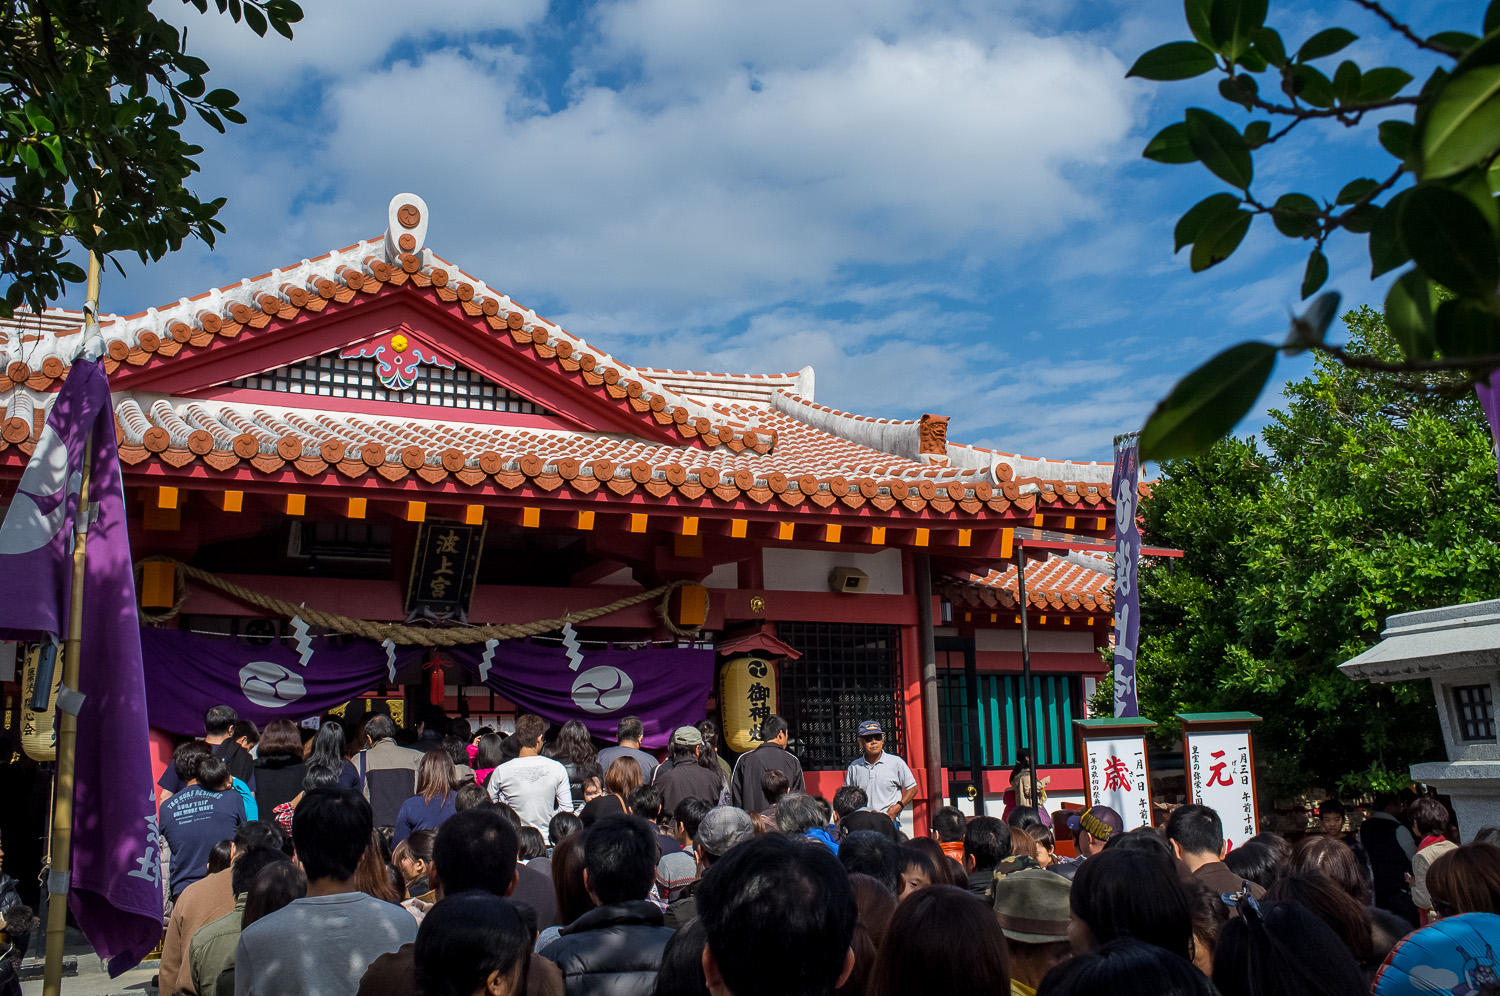 People waiting in line to pray at Nominoue Shrine in Okinawa, Japan on New Year's day.